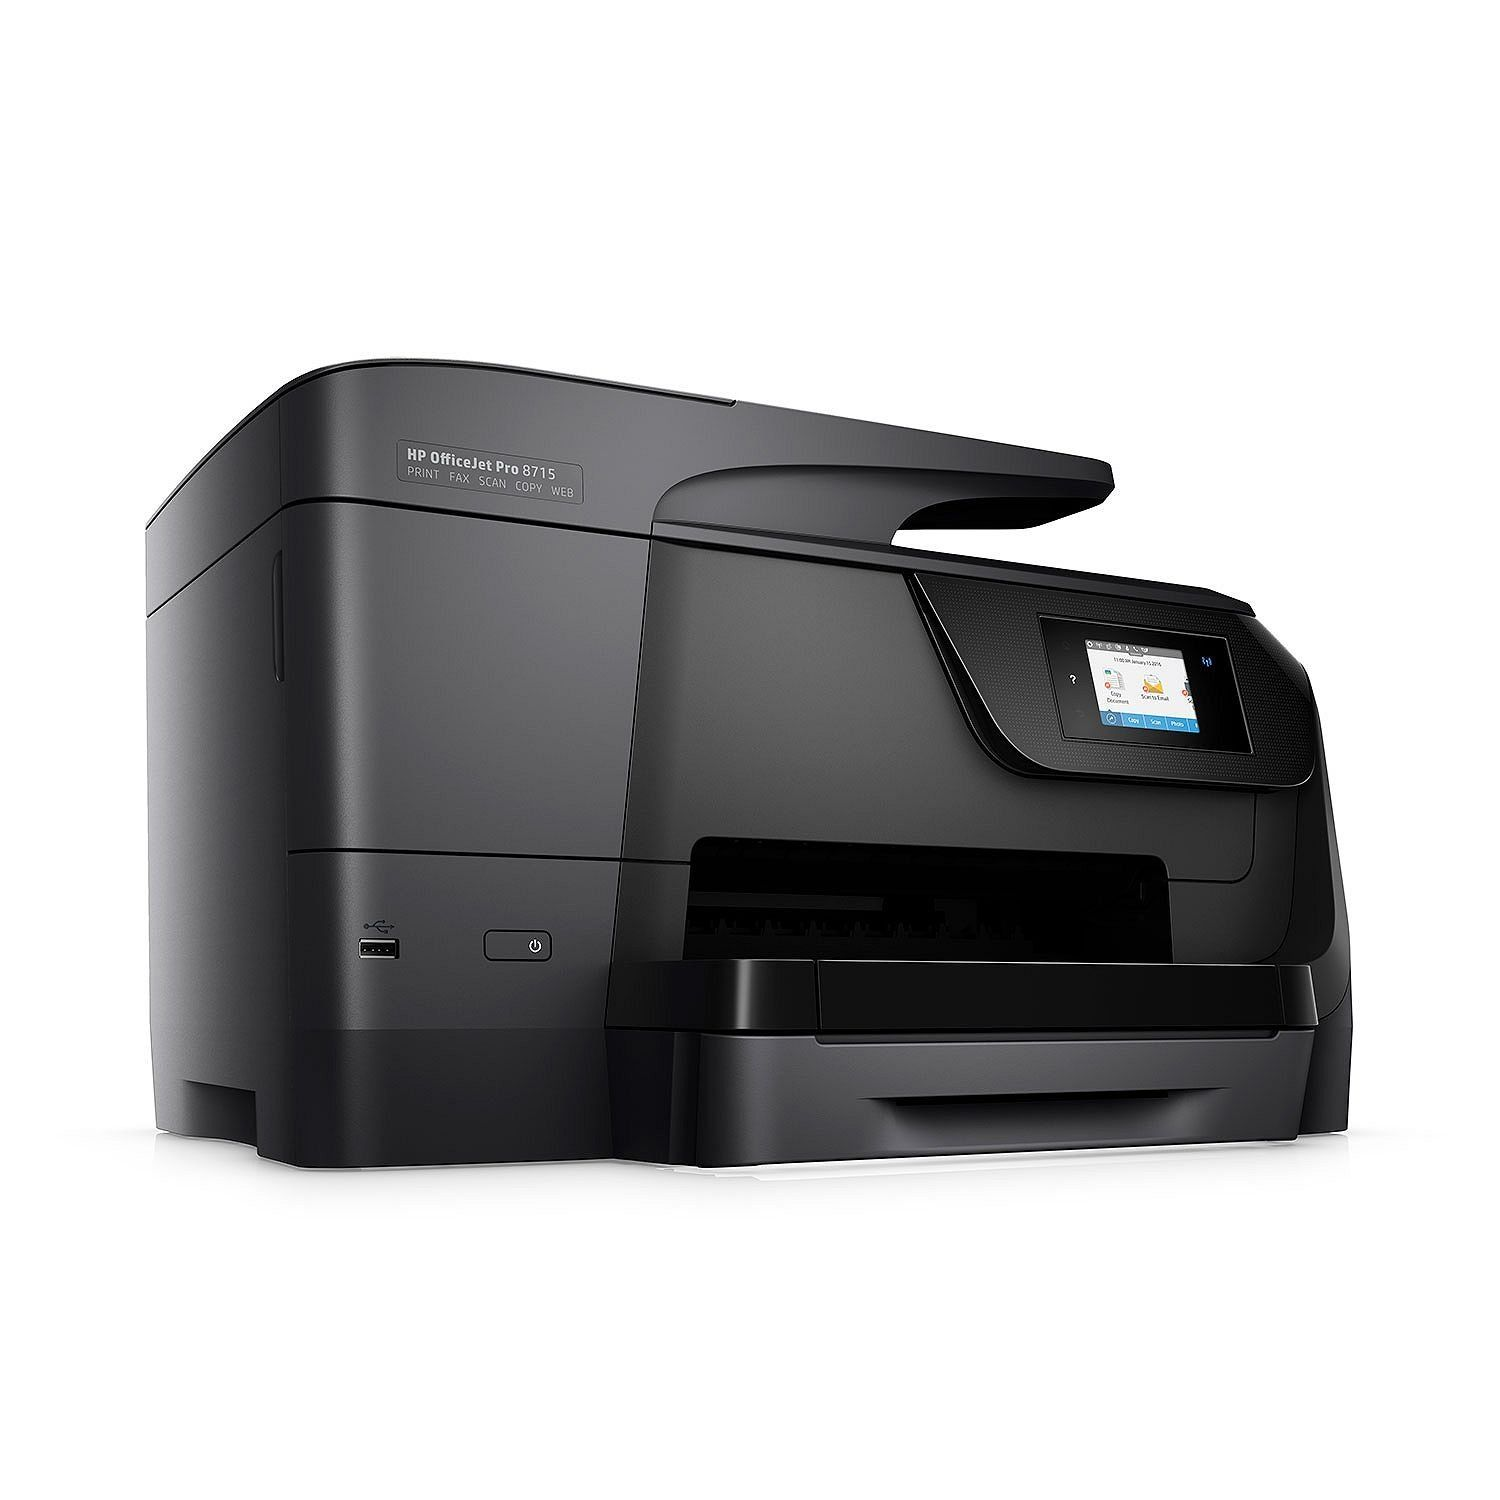 Hp Officejet Pro 8715 Allinone Printer Click On The Image For